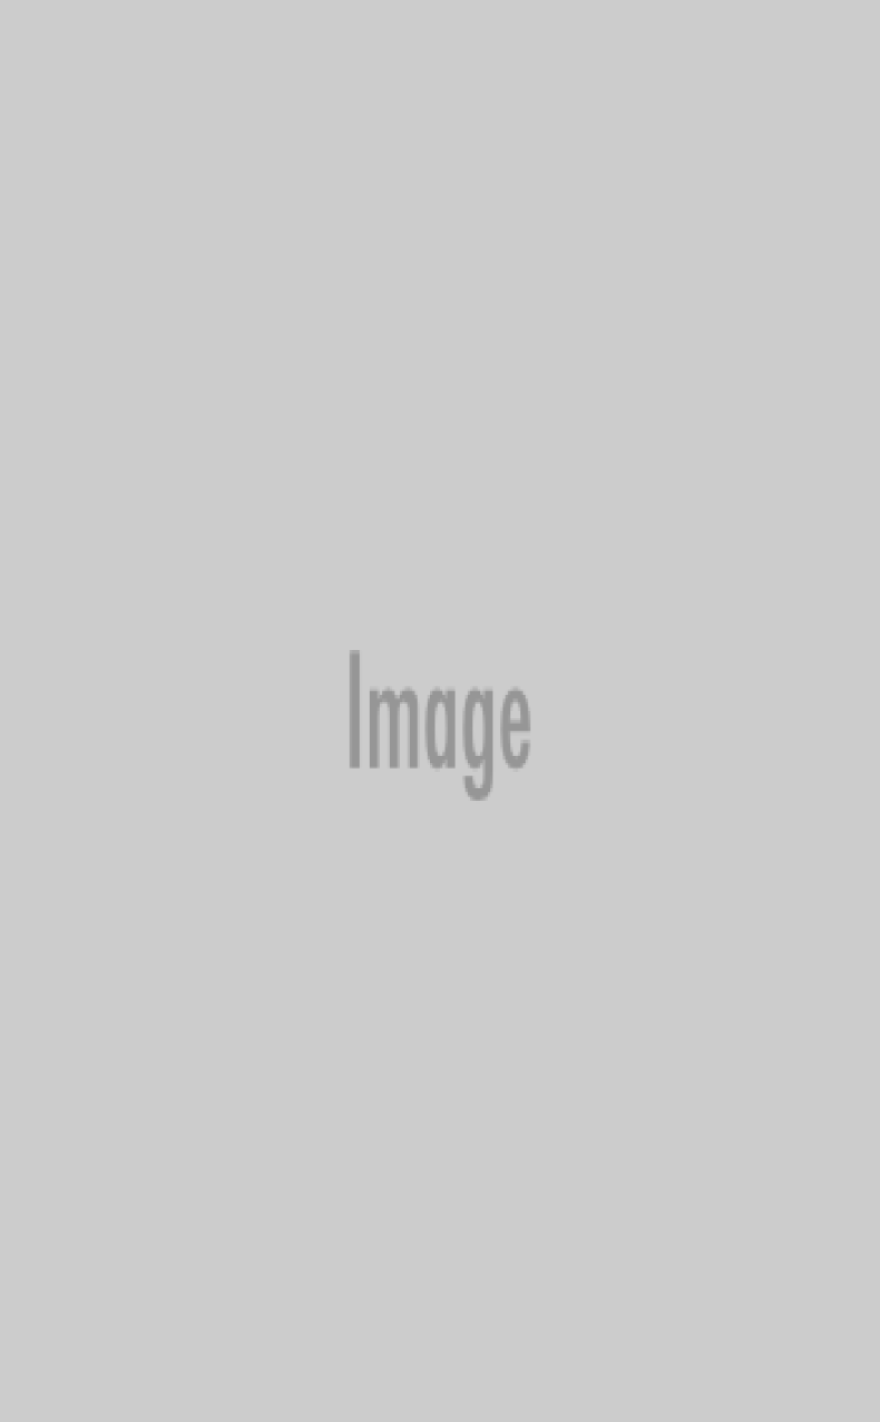 The menu from Childs' in New York, 1907. (New York Public Library's Buttolph Menu Collection)